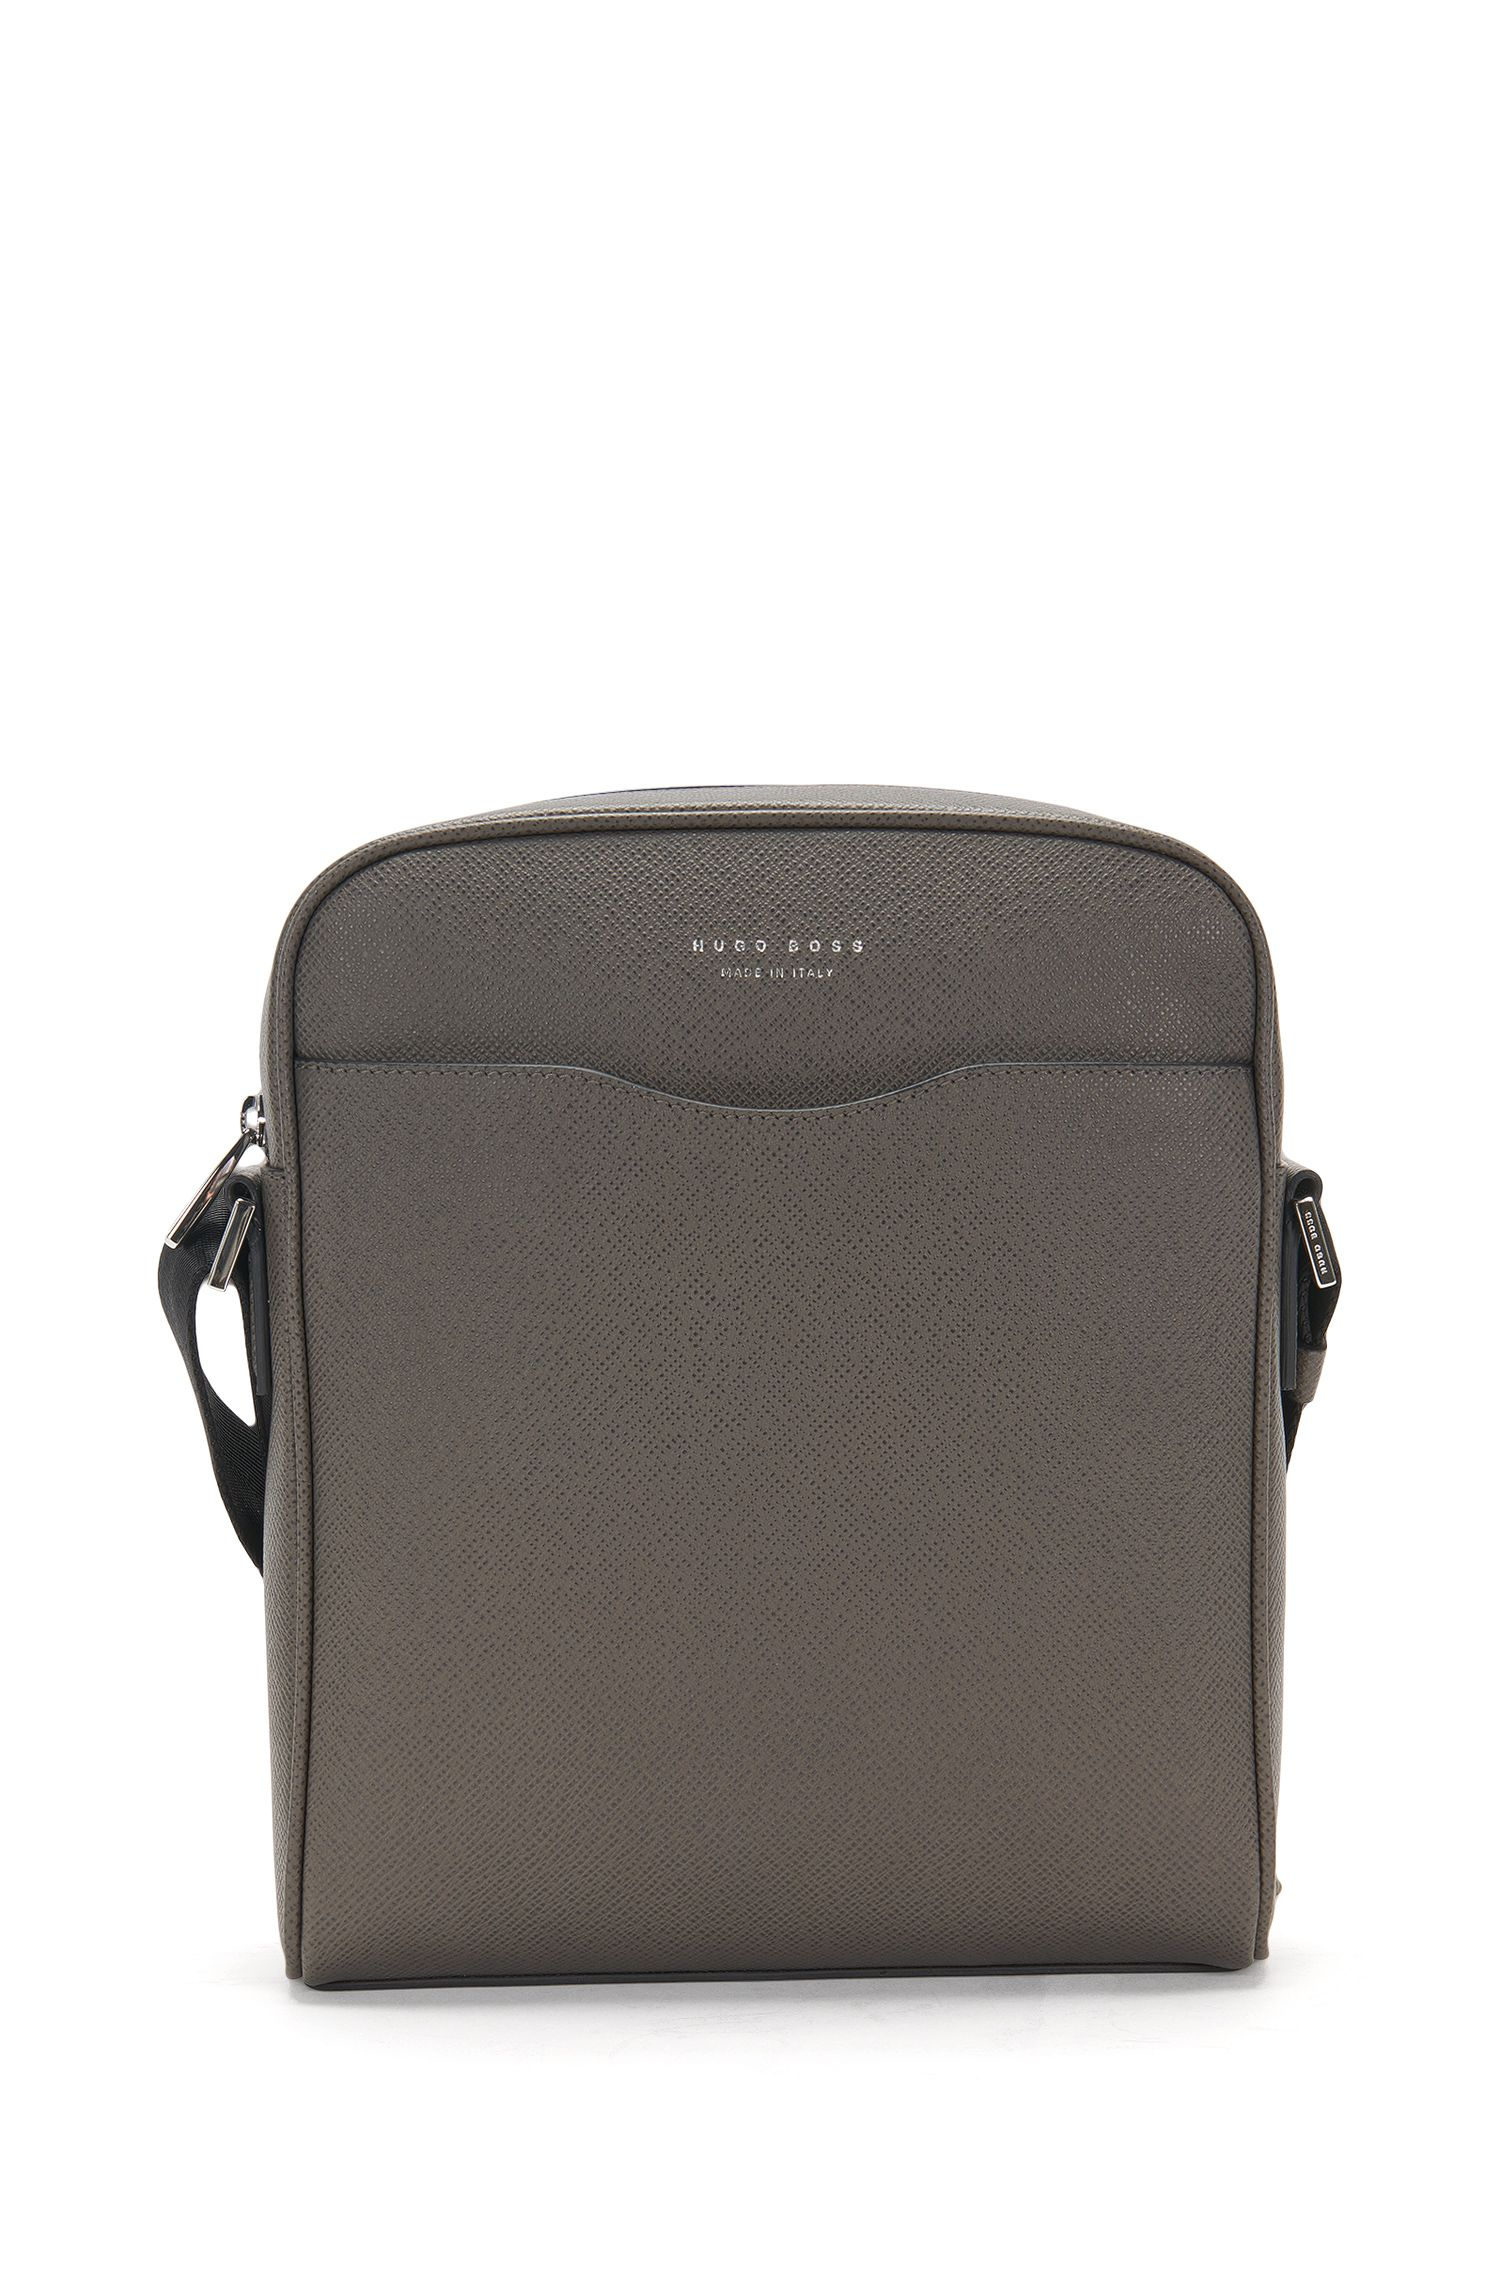 Sac reporter de la collection Signature en cuir palmellato